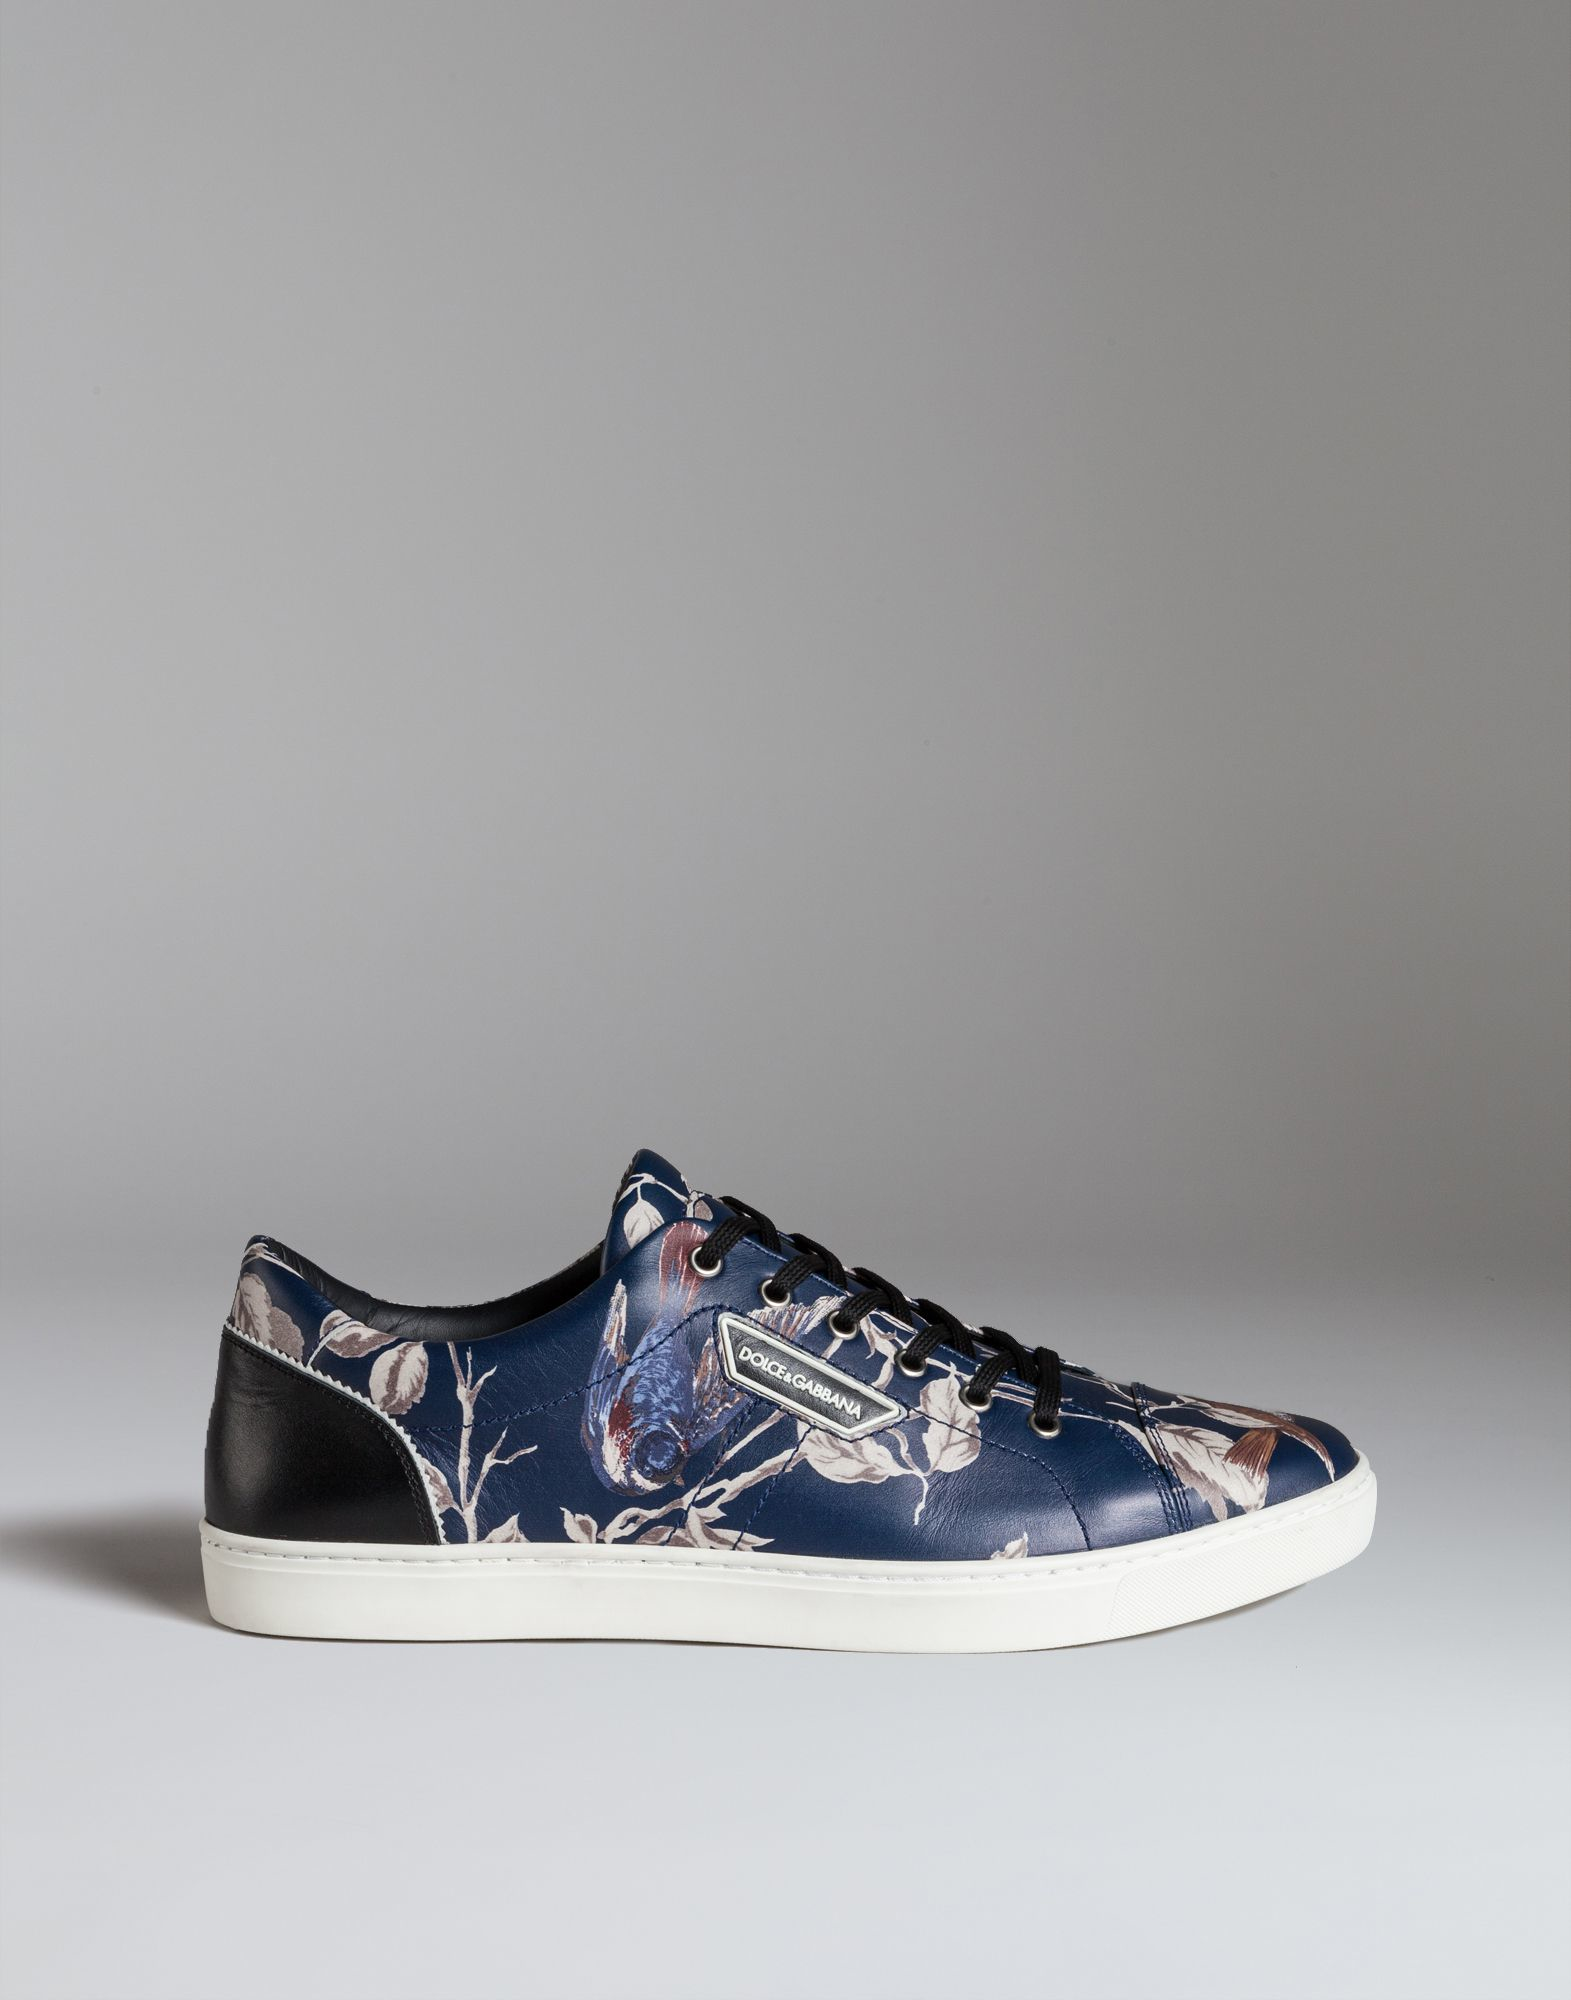 dolce gabbana sneakers in printed leather in blue for men lyst. Black Bedroom Furniture Sets. Home Design Ideas